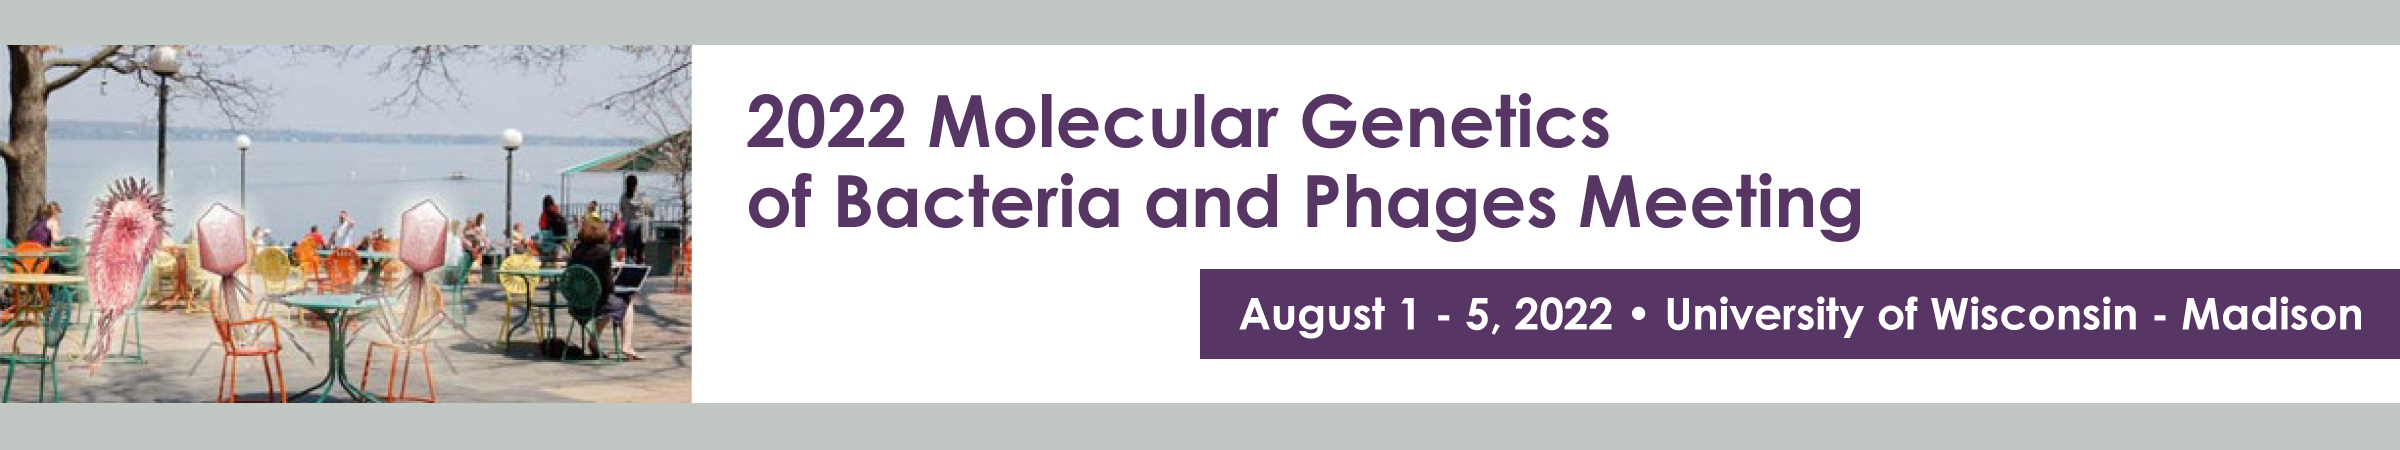 Molecular Genetics of Bacteria and Phages Meeting